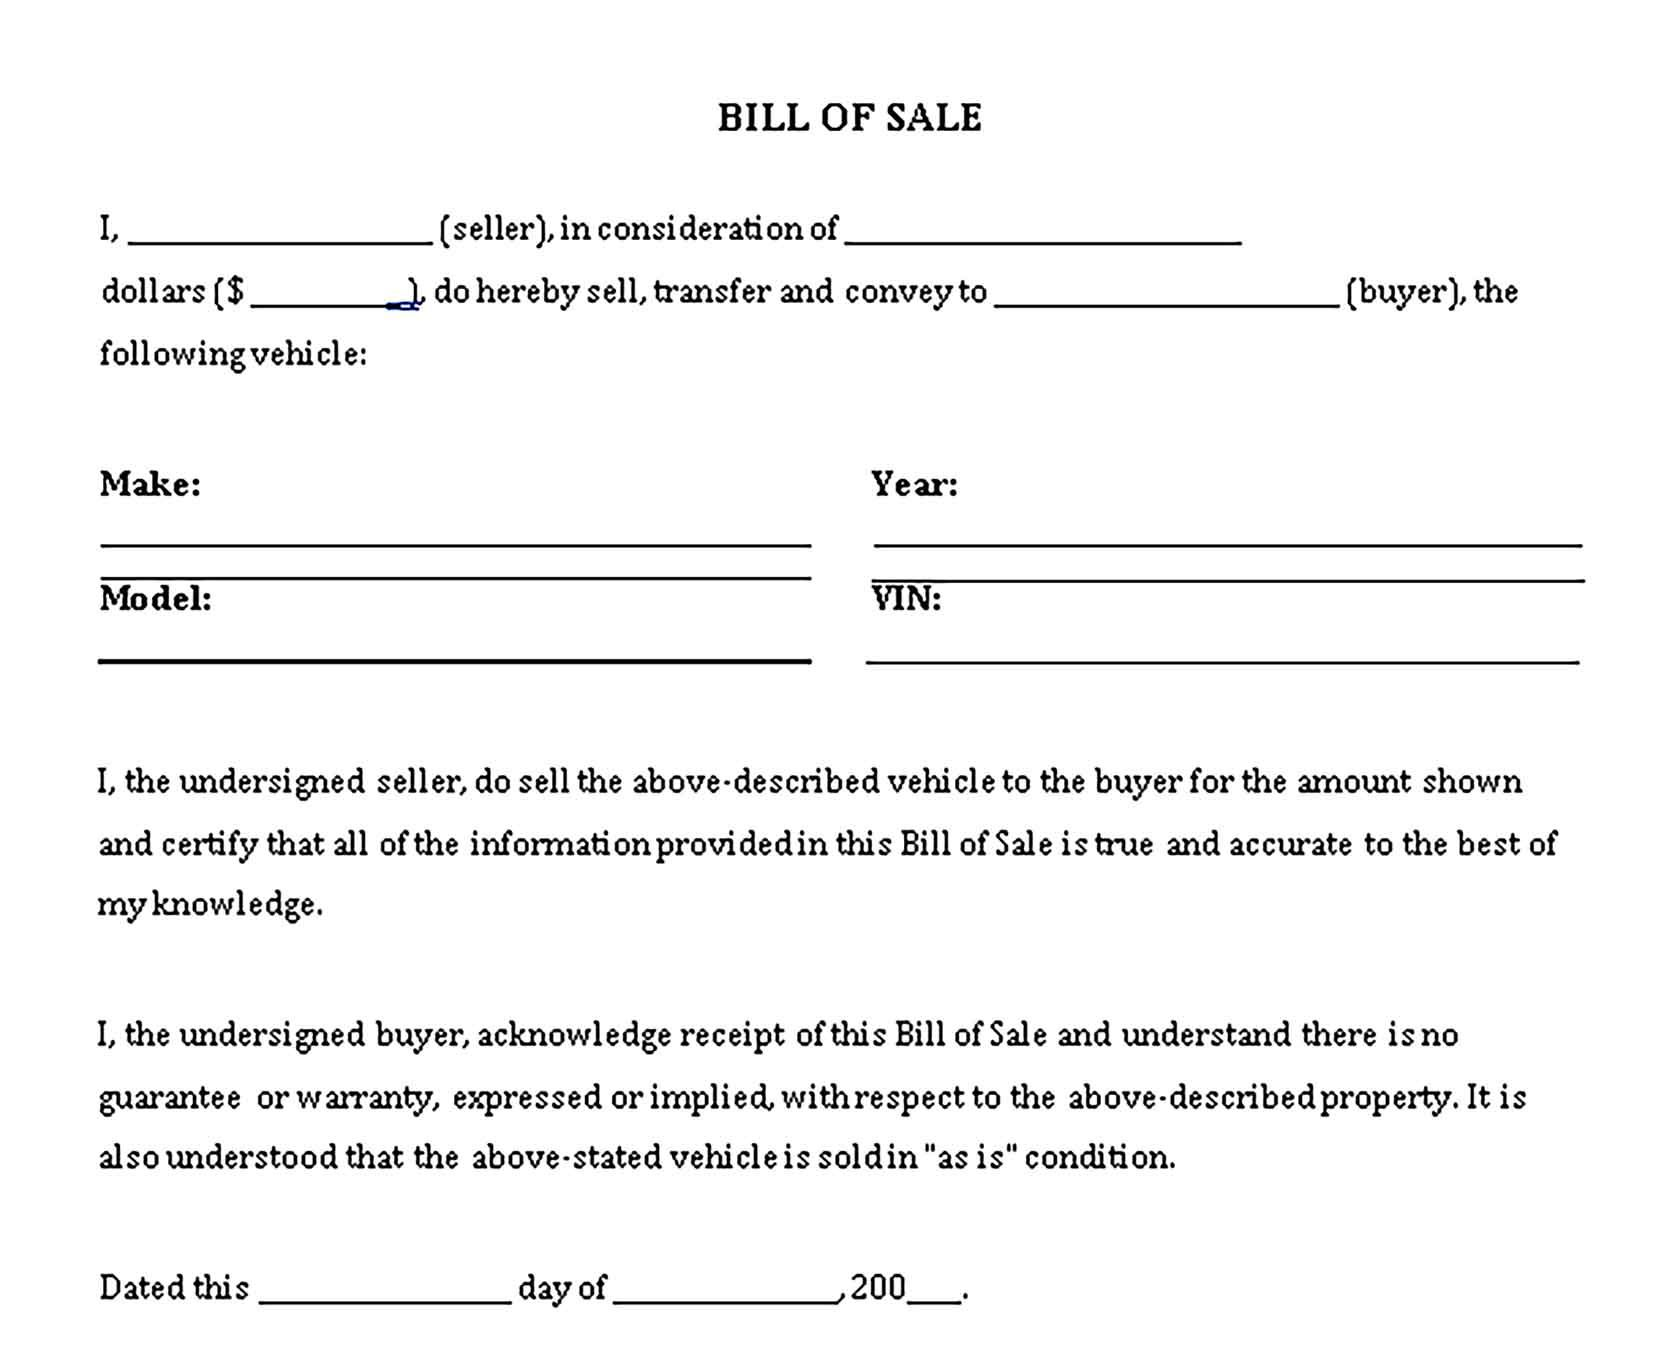 General Bill Of Sale Sample Business Template Bills Bill Of Sale Template General bill of sale template